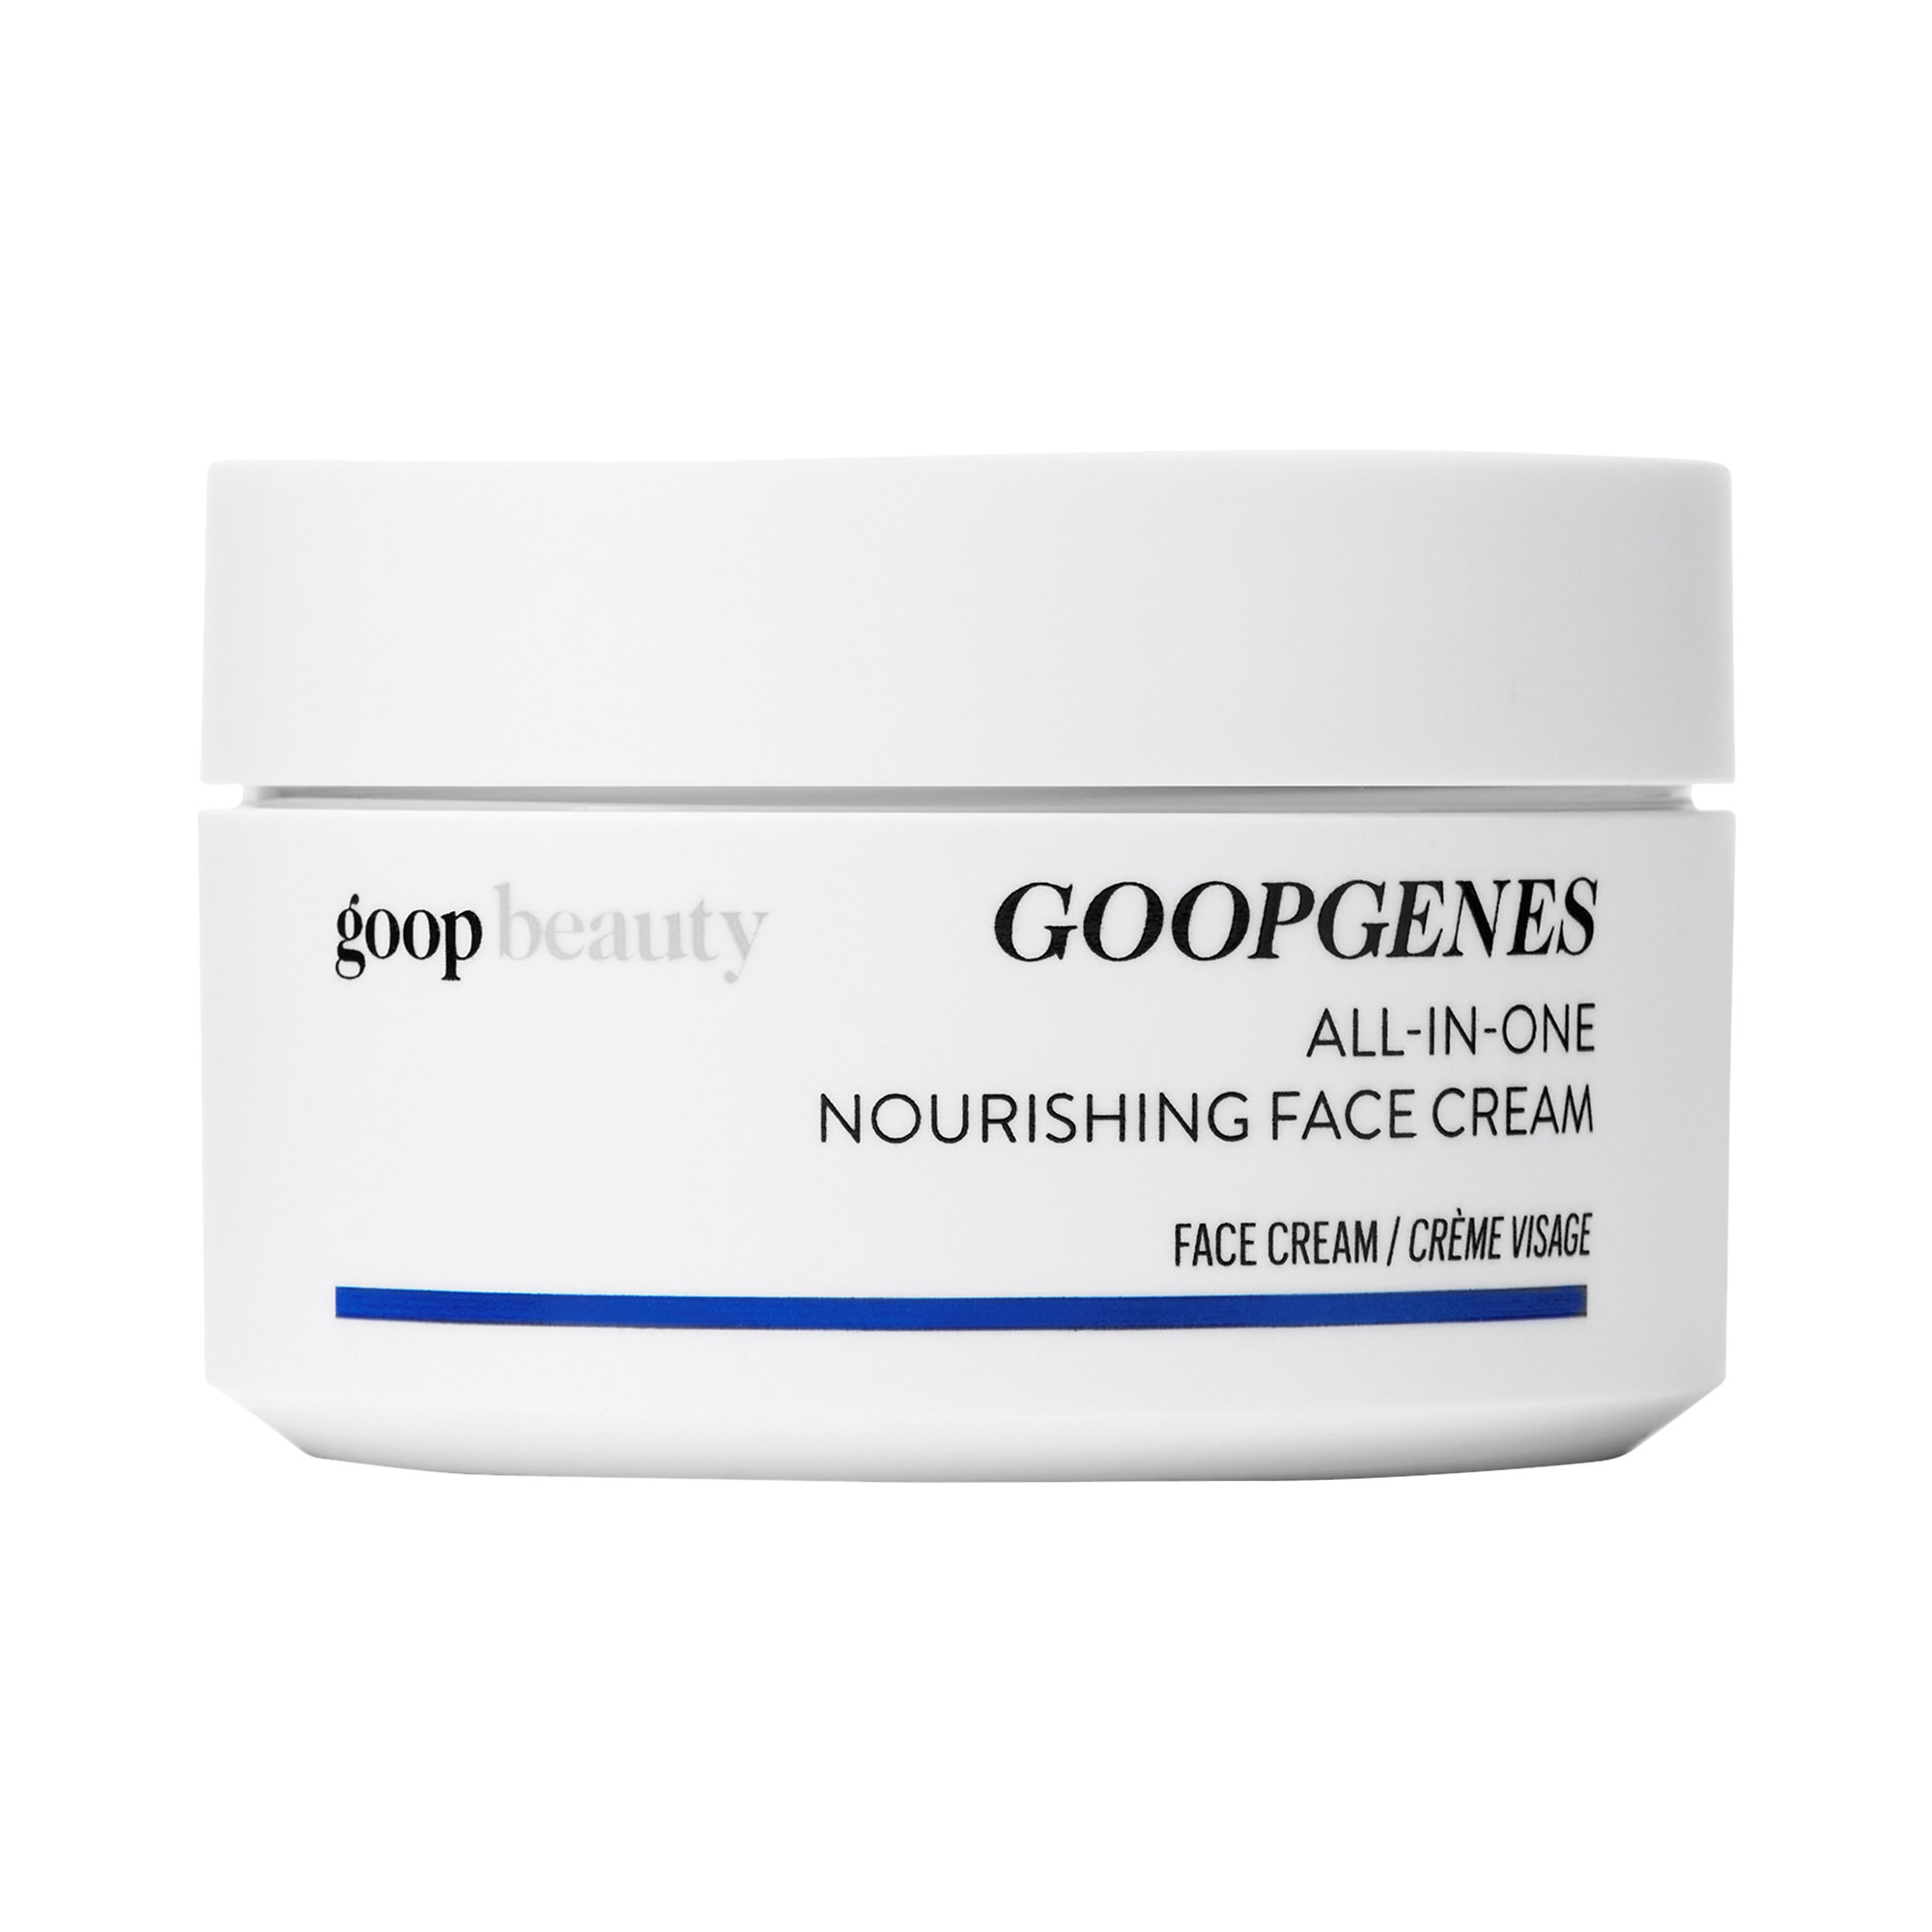 Goop - Goopgenes All-In-One Nourishing Face Cream